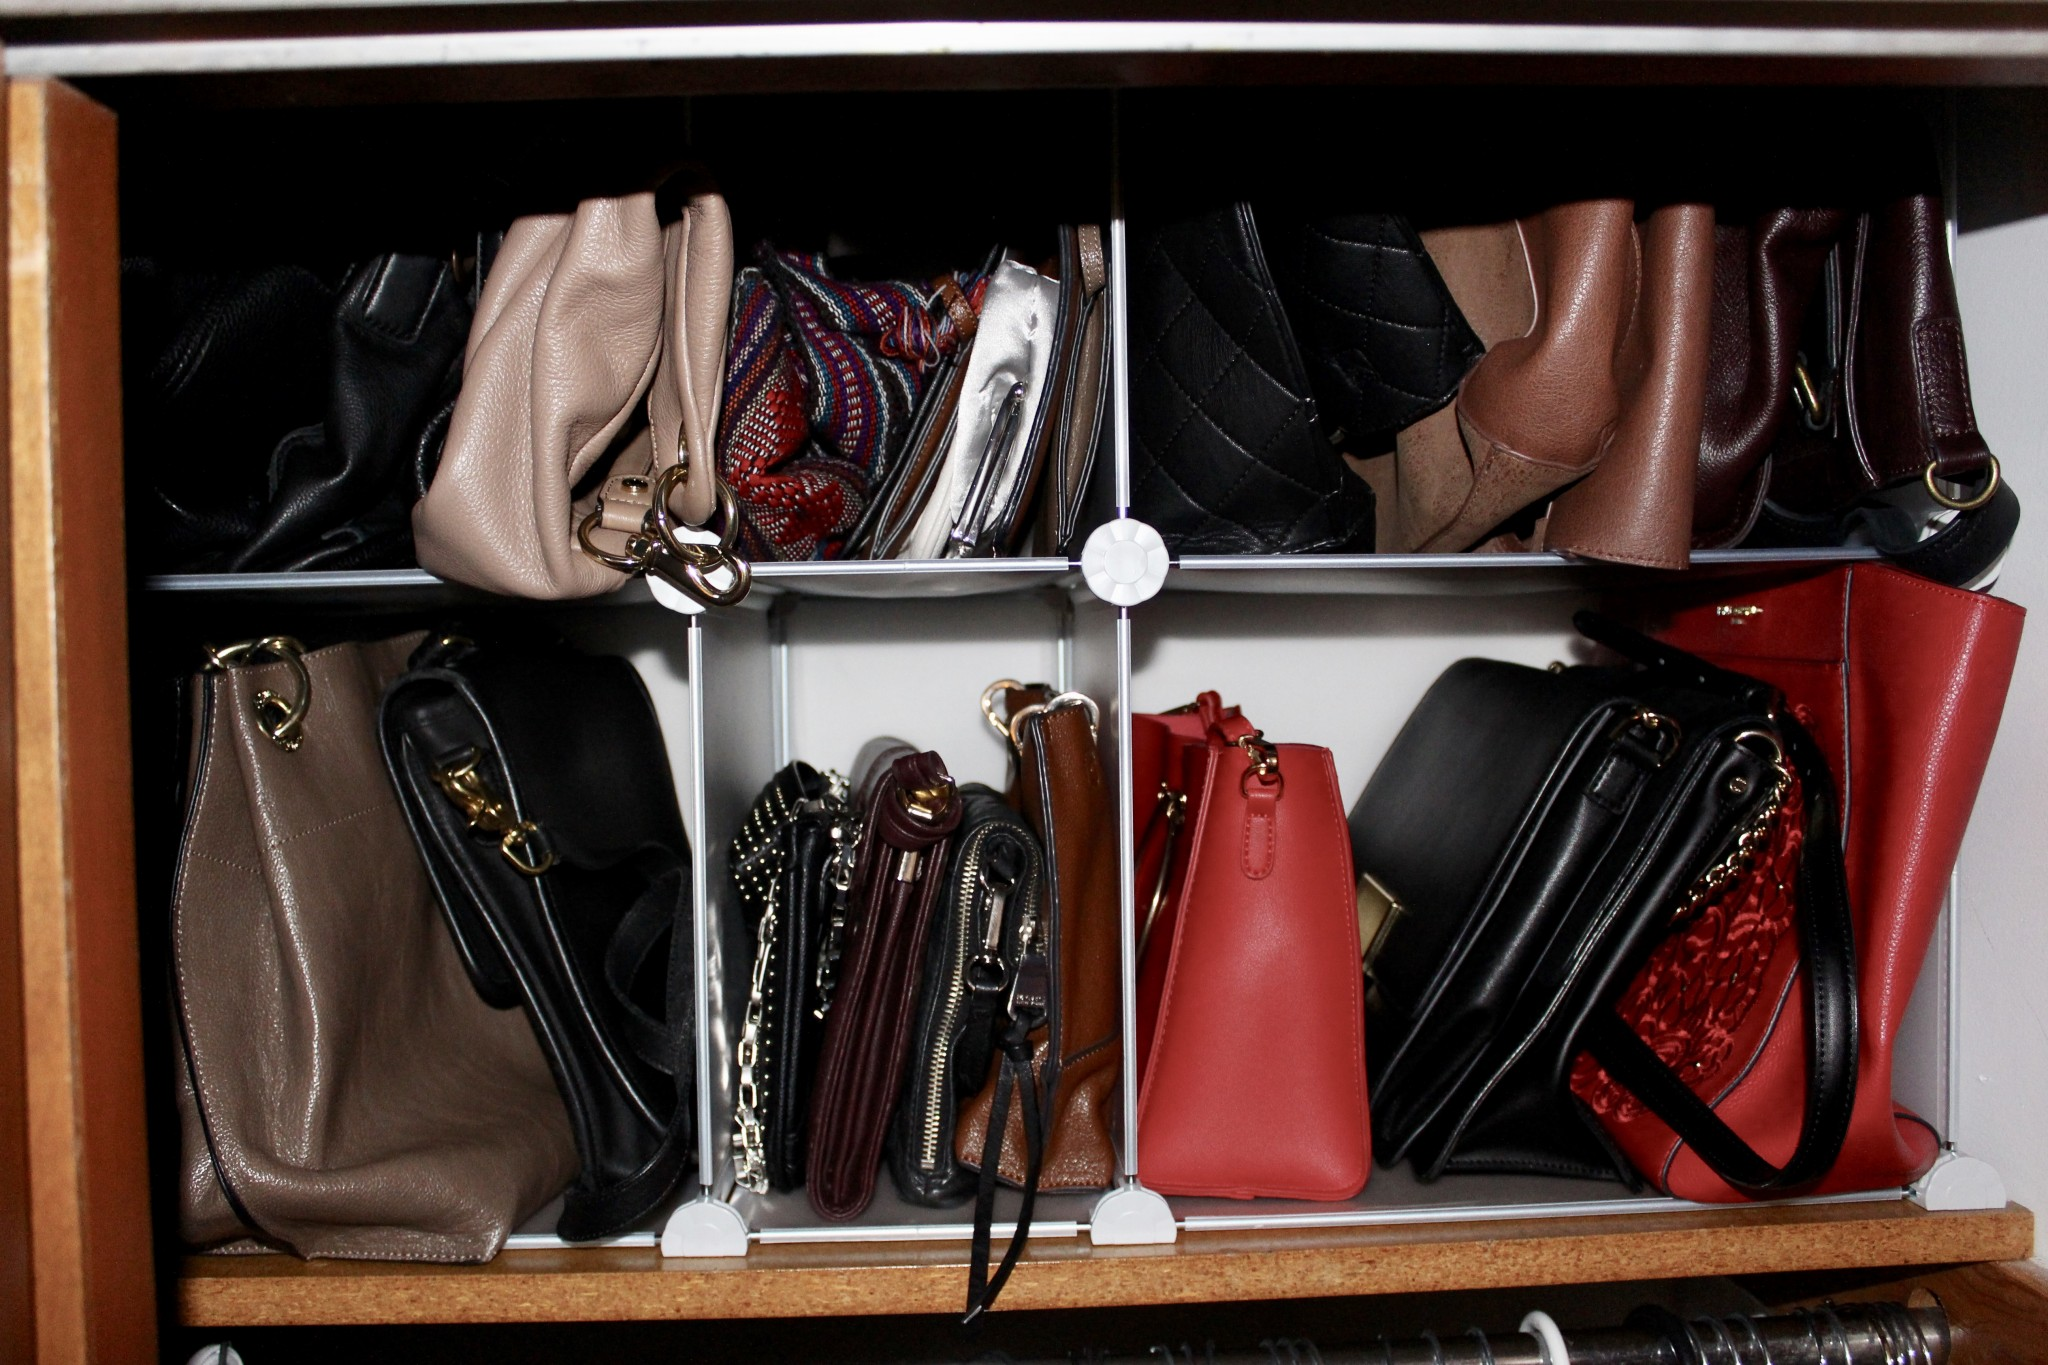 My Declutter Story - The Face Of Style